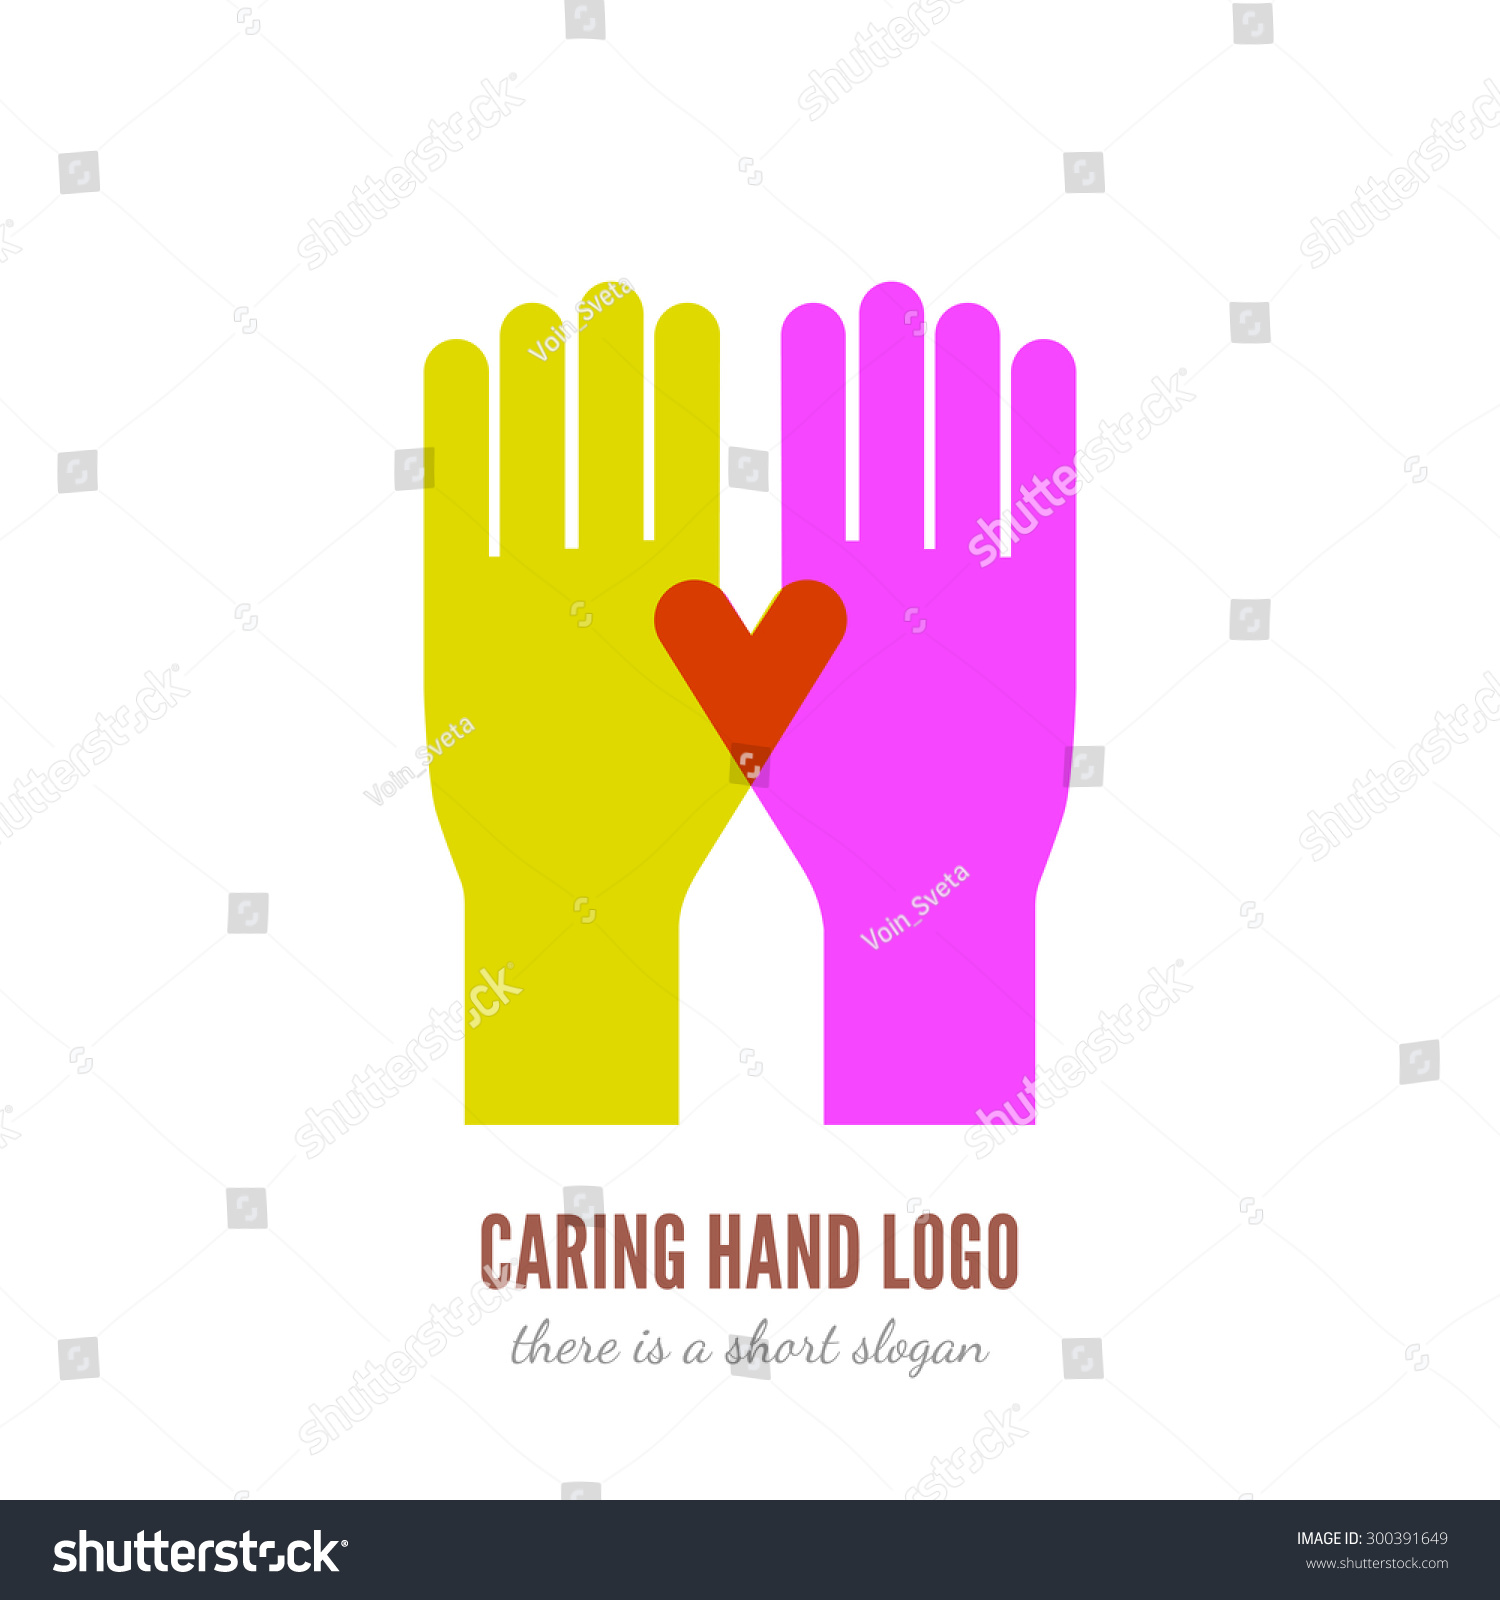 Vector illustration two hands logo template stock vector 300391649 vector illustration of two hands logo template help care assistant concept icon pronofoot35fo Image collections